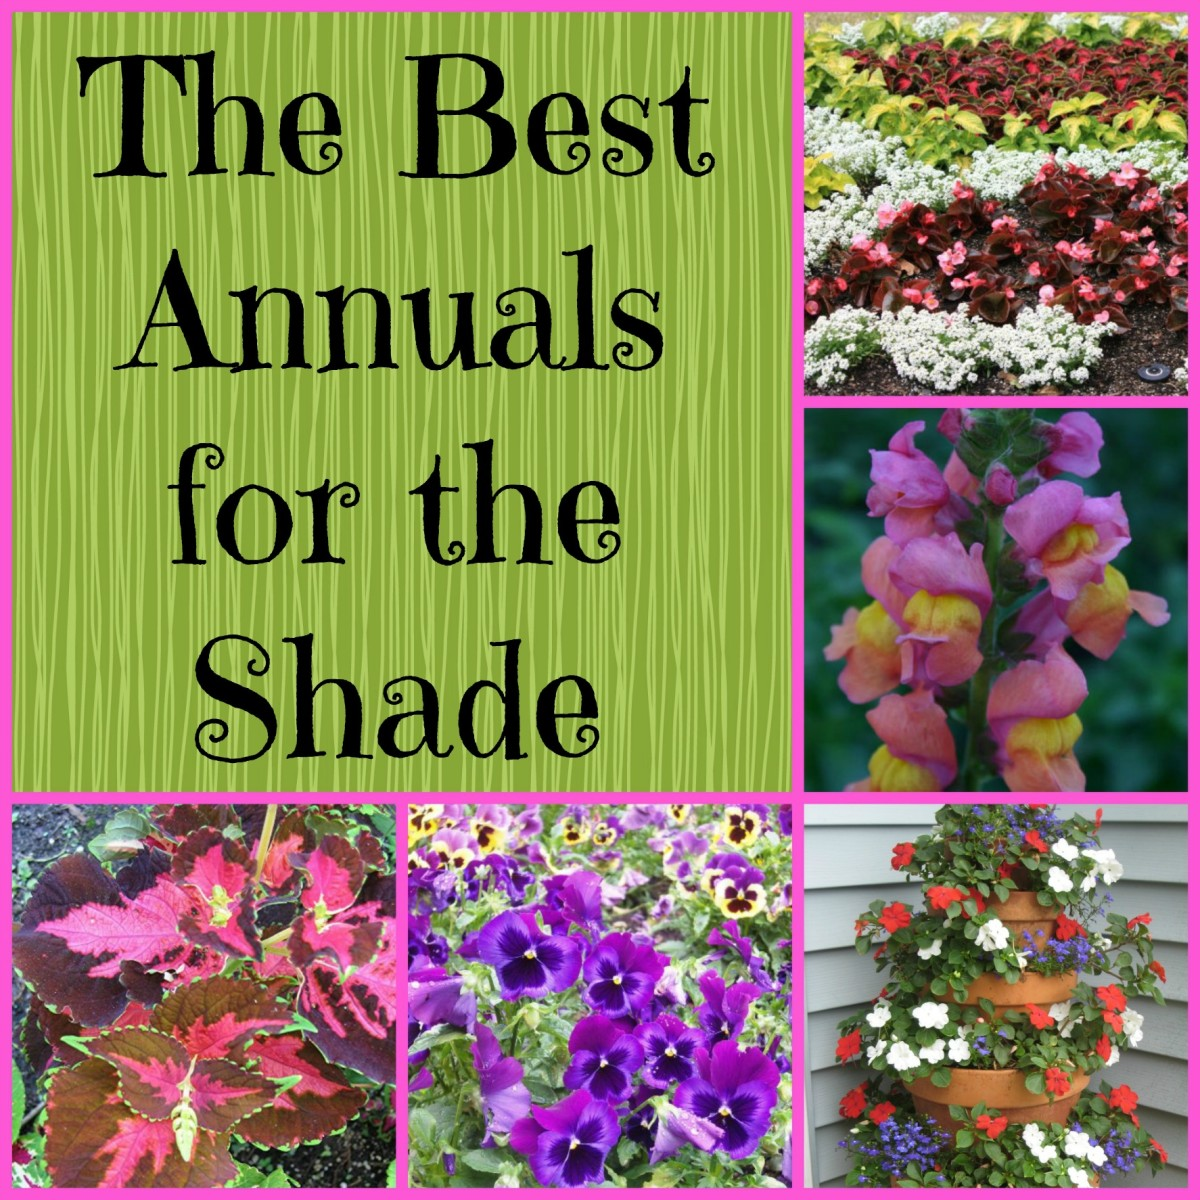 Gardening In The Shade Annual Plants For Shady Areas Dengarden